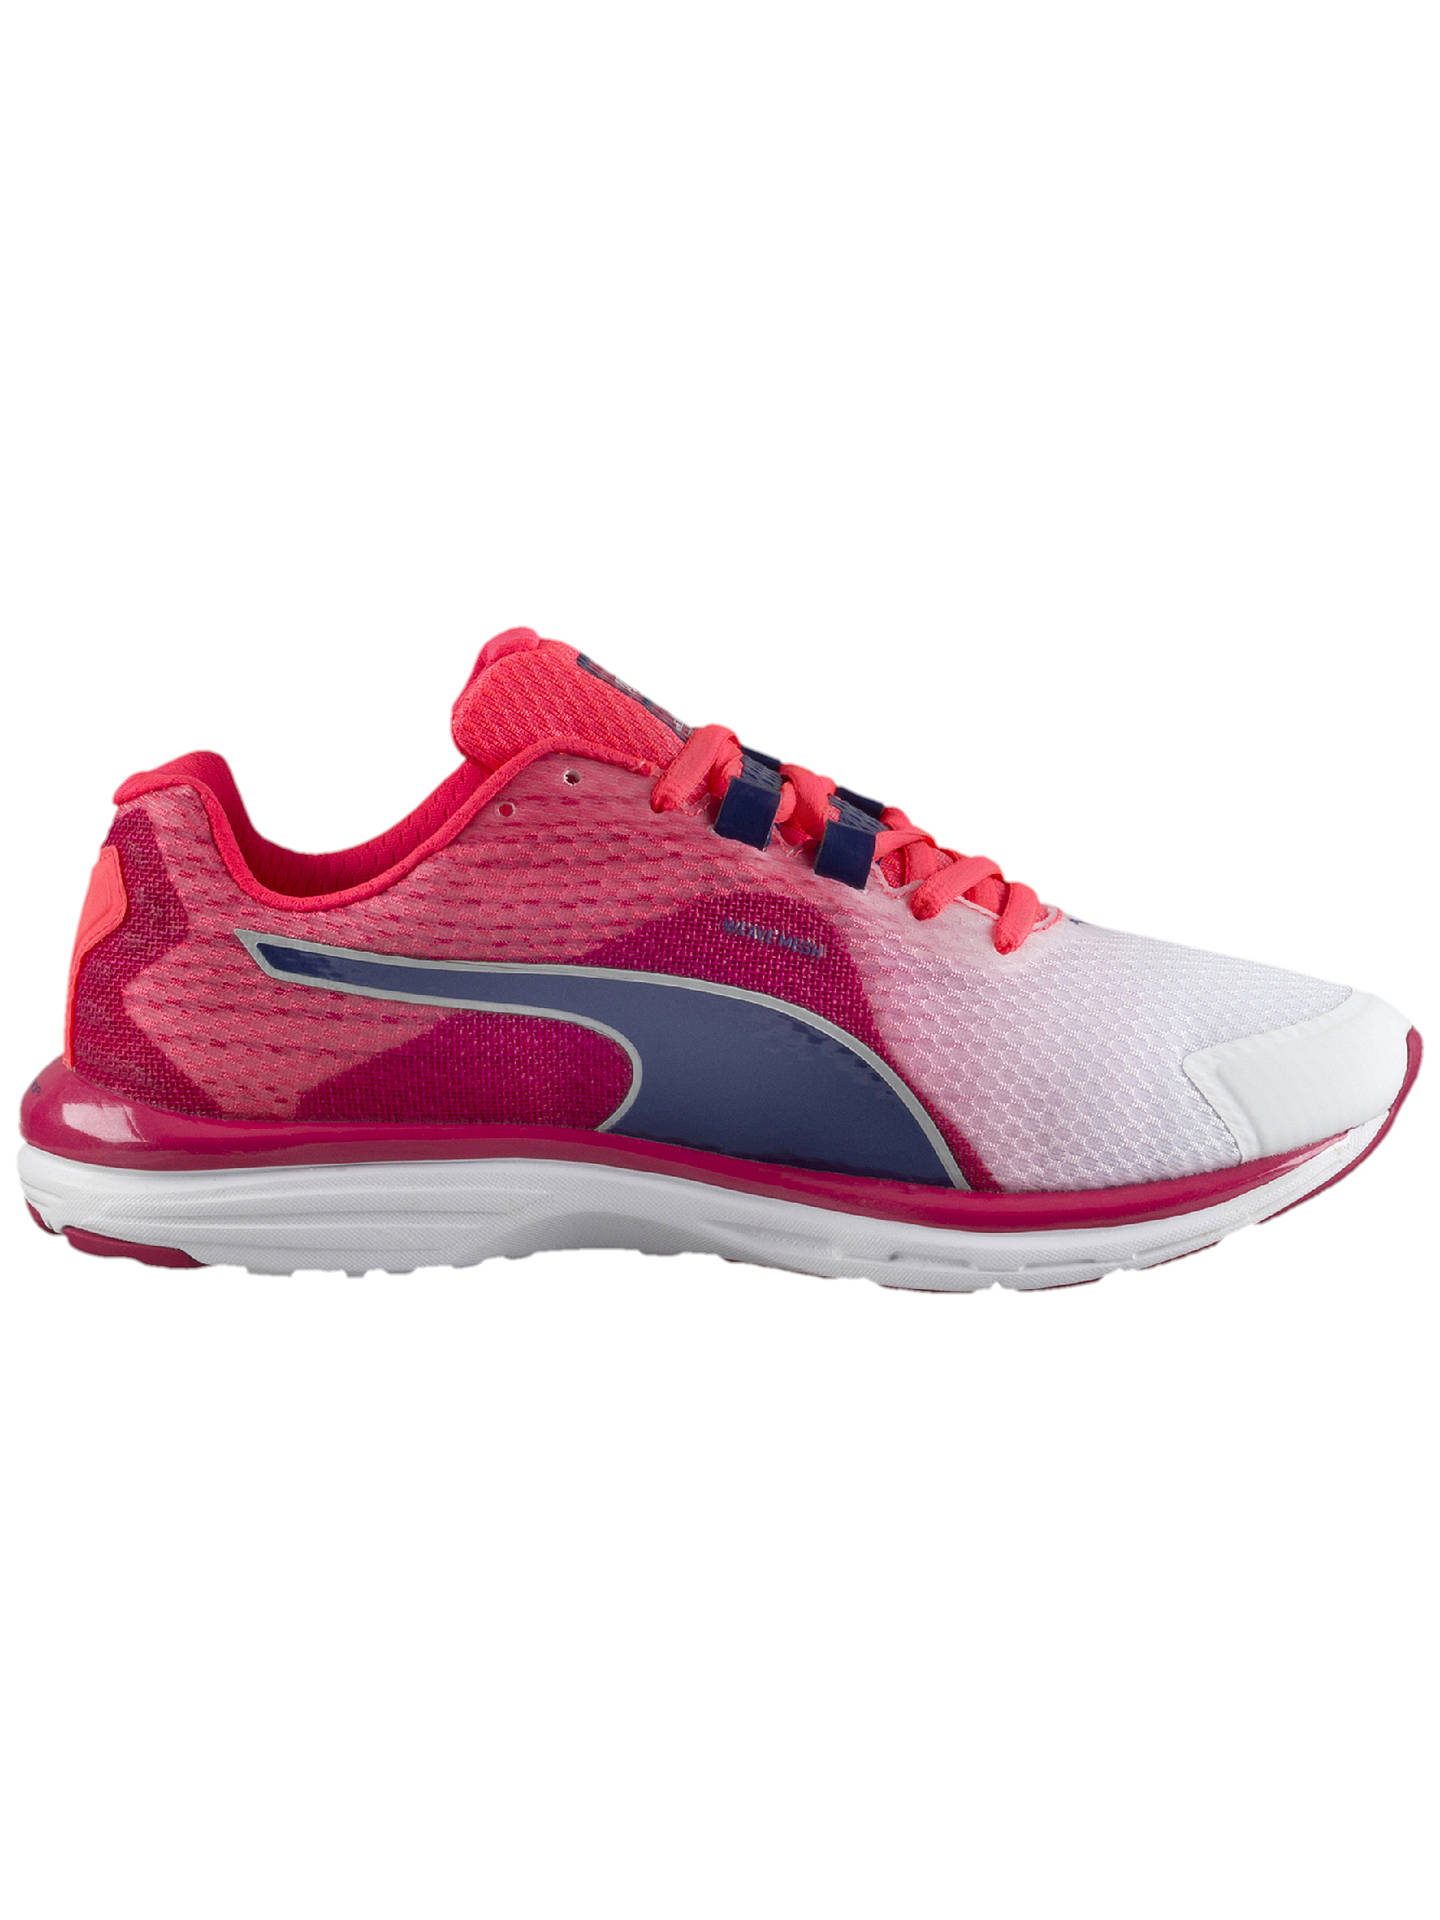 best service c1ad5 8bcca Puma FAAS 500 V4 Women's Running Shoes, Pink/White at John ...